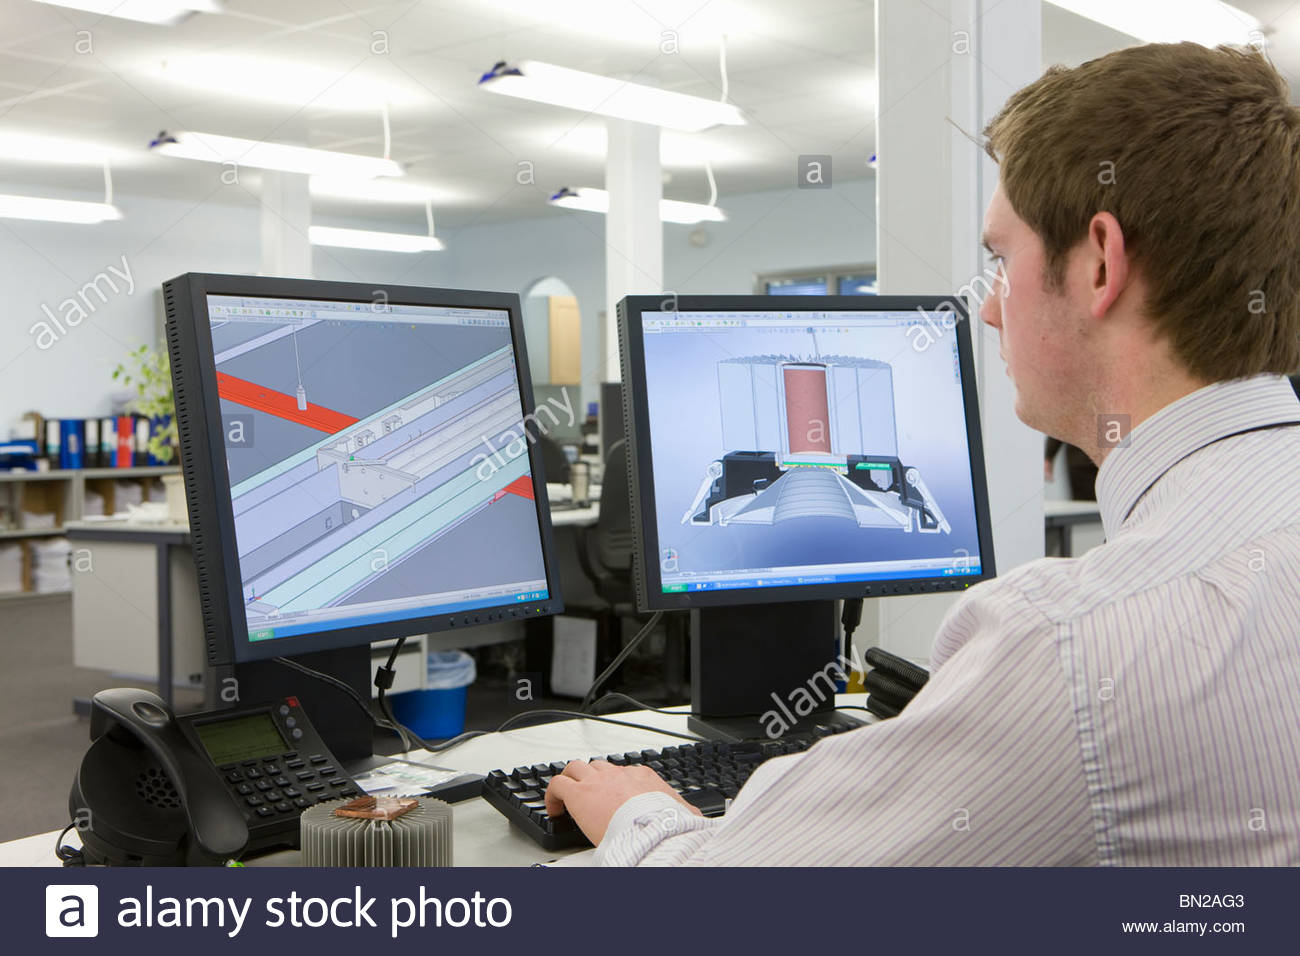 cad designer working at computer monitors in office stock photo 30170339 alamy. Black Bedroom Furniture Sets. Home Design Ideas